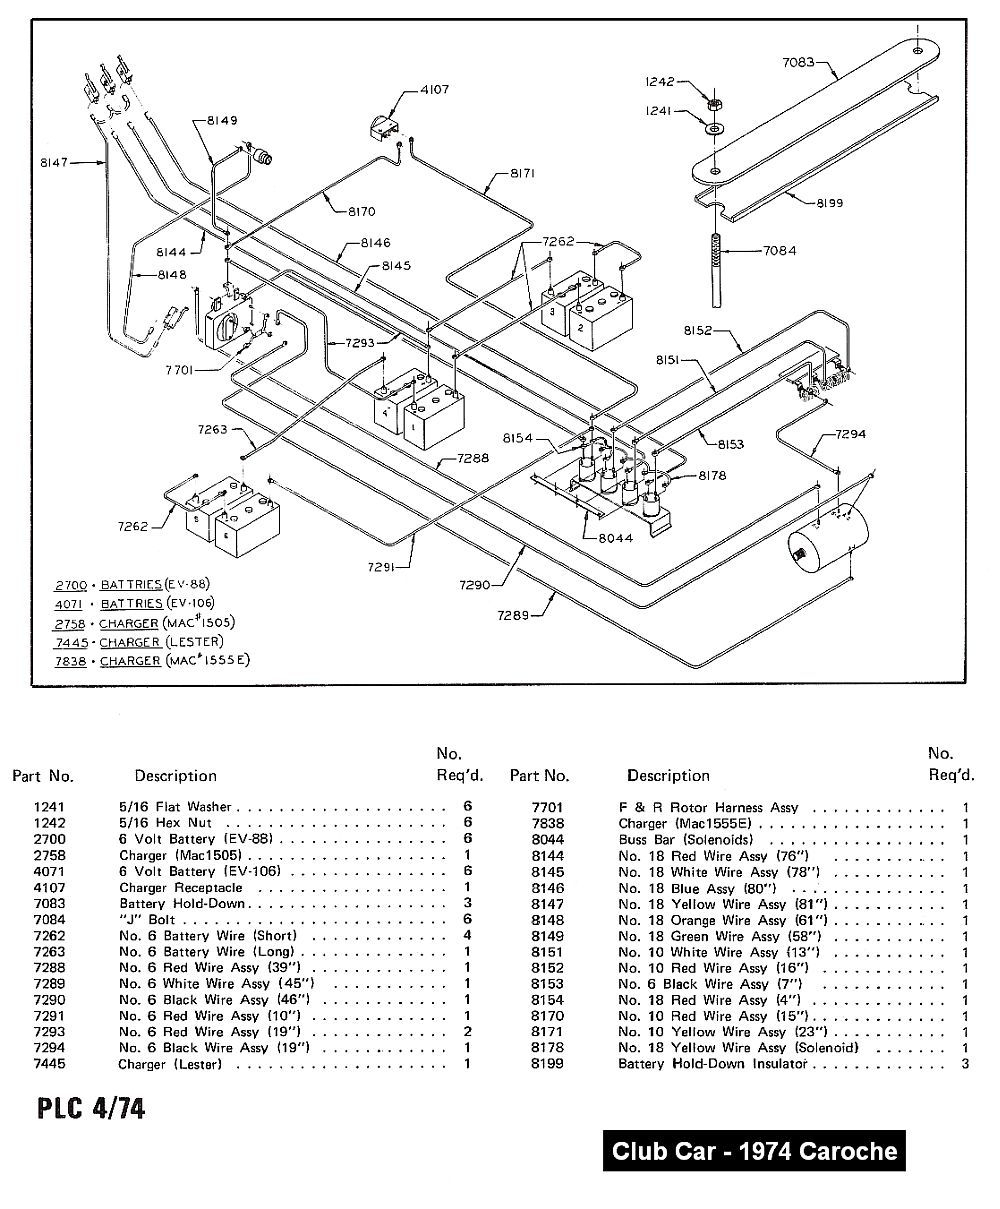 Ingersoll Rand Golf Cart Wiring Diagram Club Car Golf Cart Parts Diagram Automotive Parts